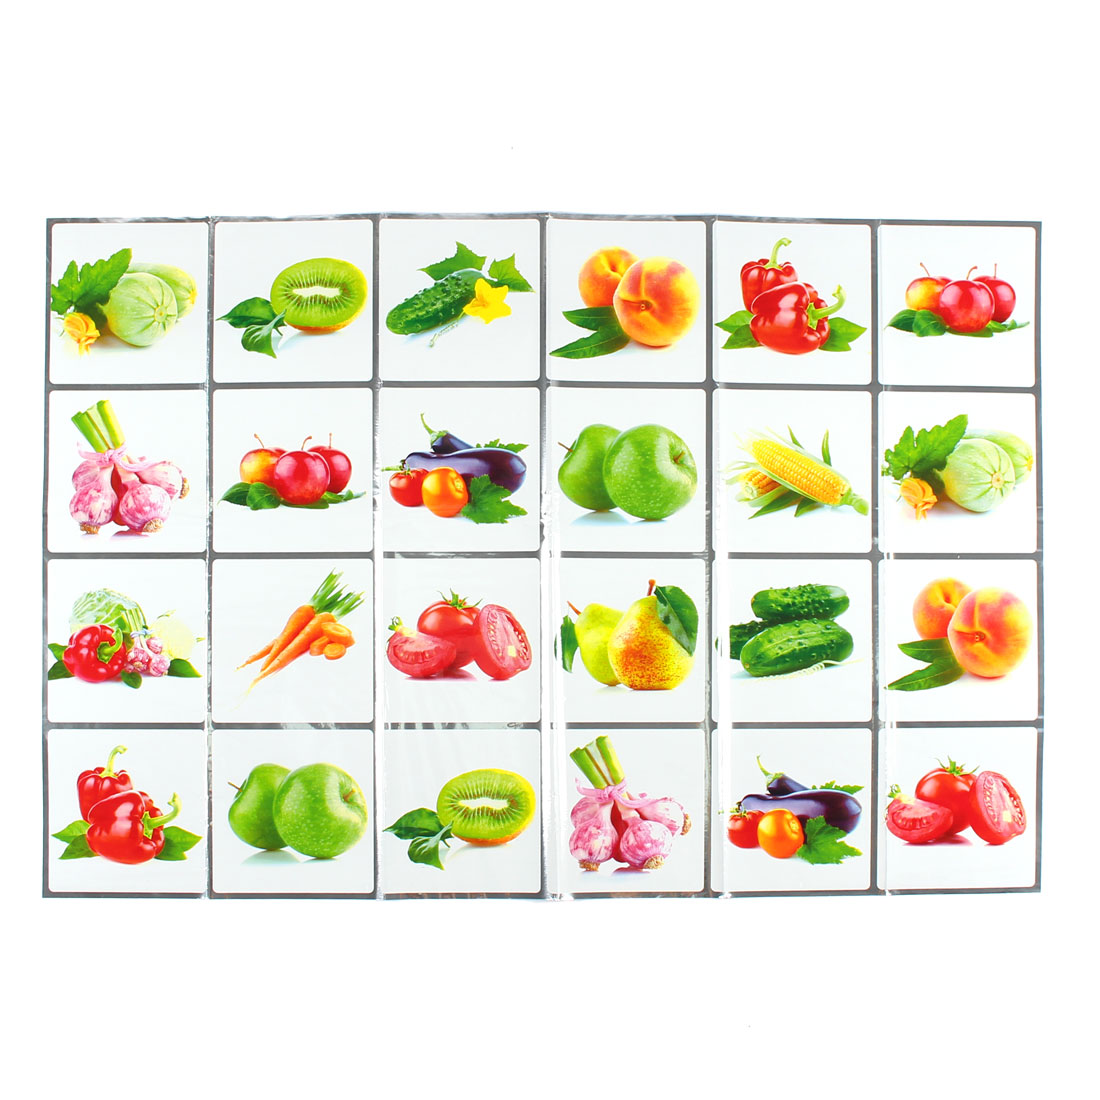 Kitchen Fruits Pattern Removable Self-adhesive Oilproof Wall Window Sticker 90 x 60cm